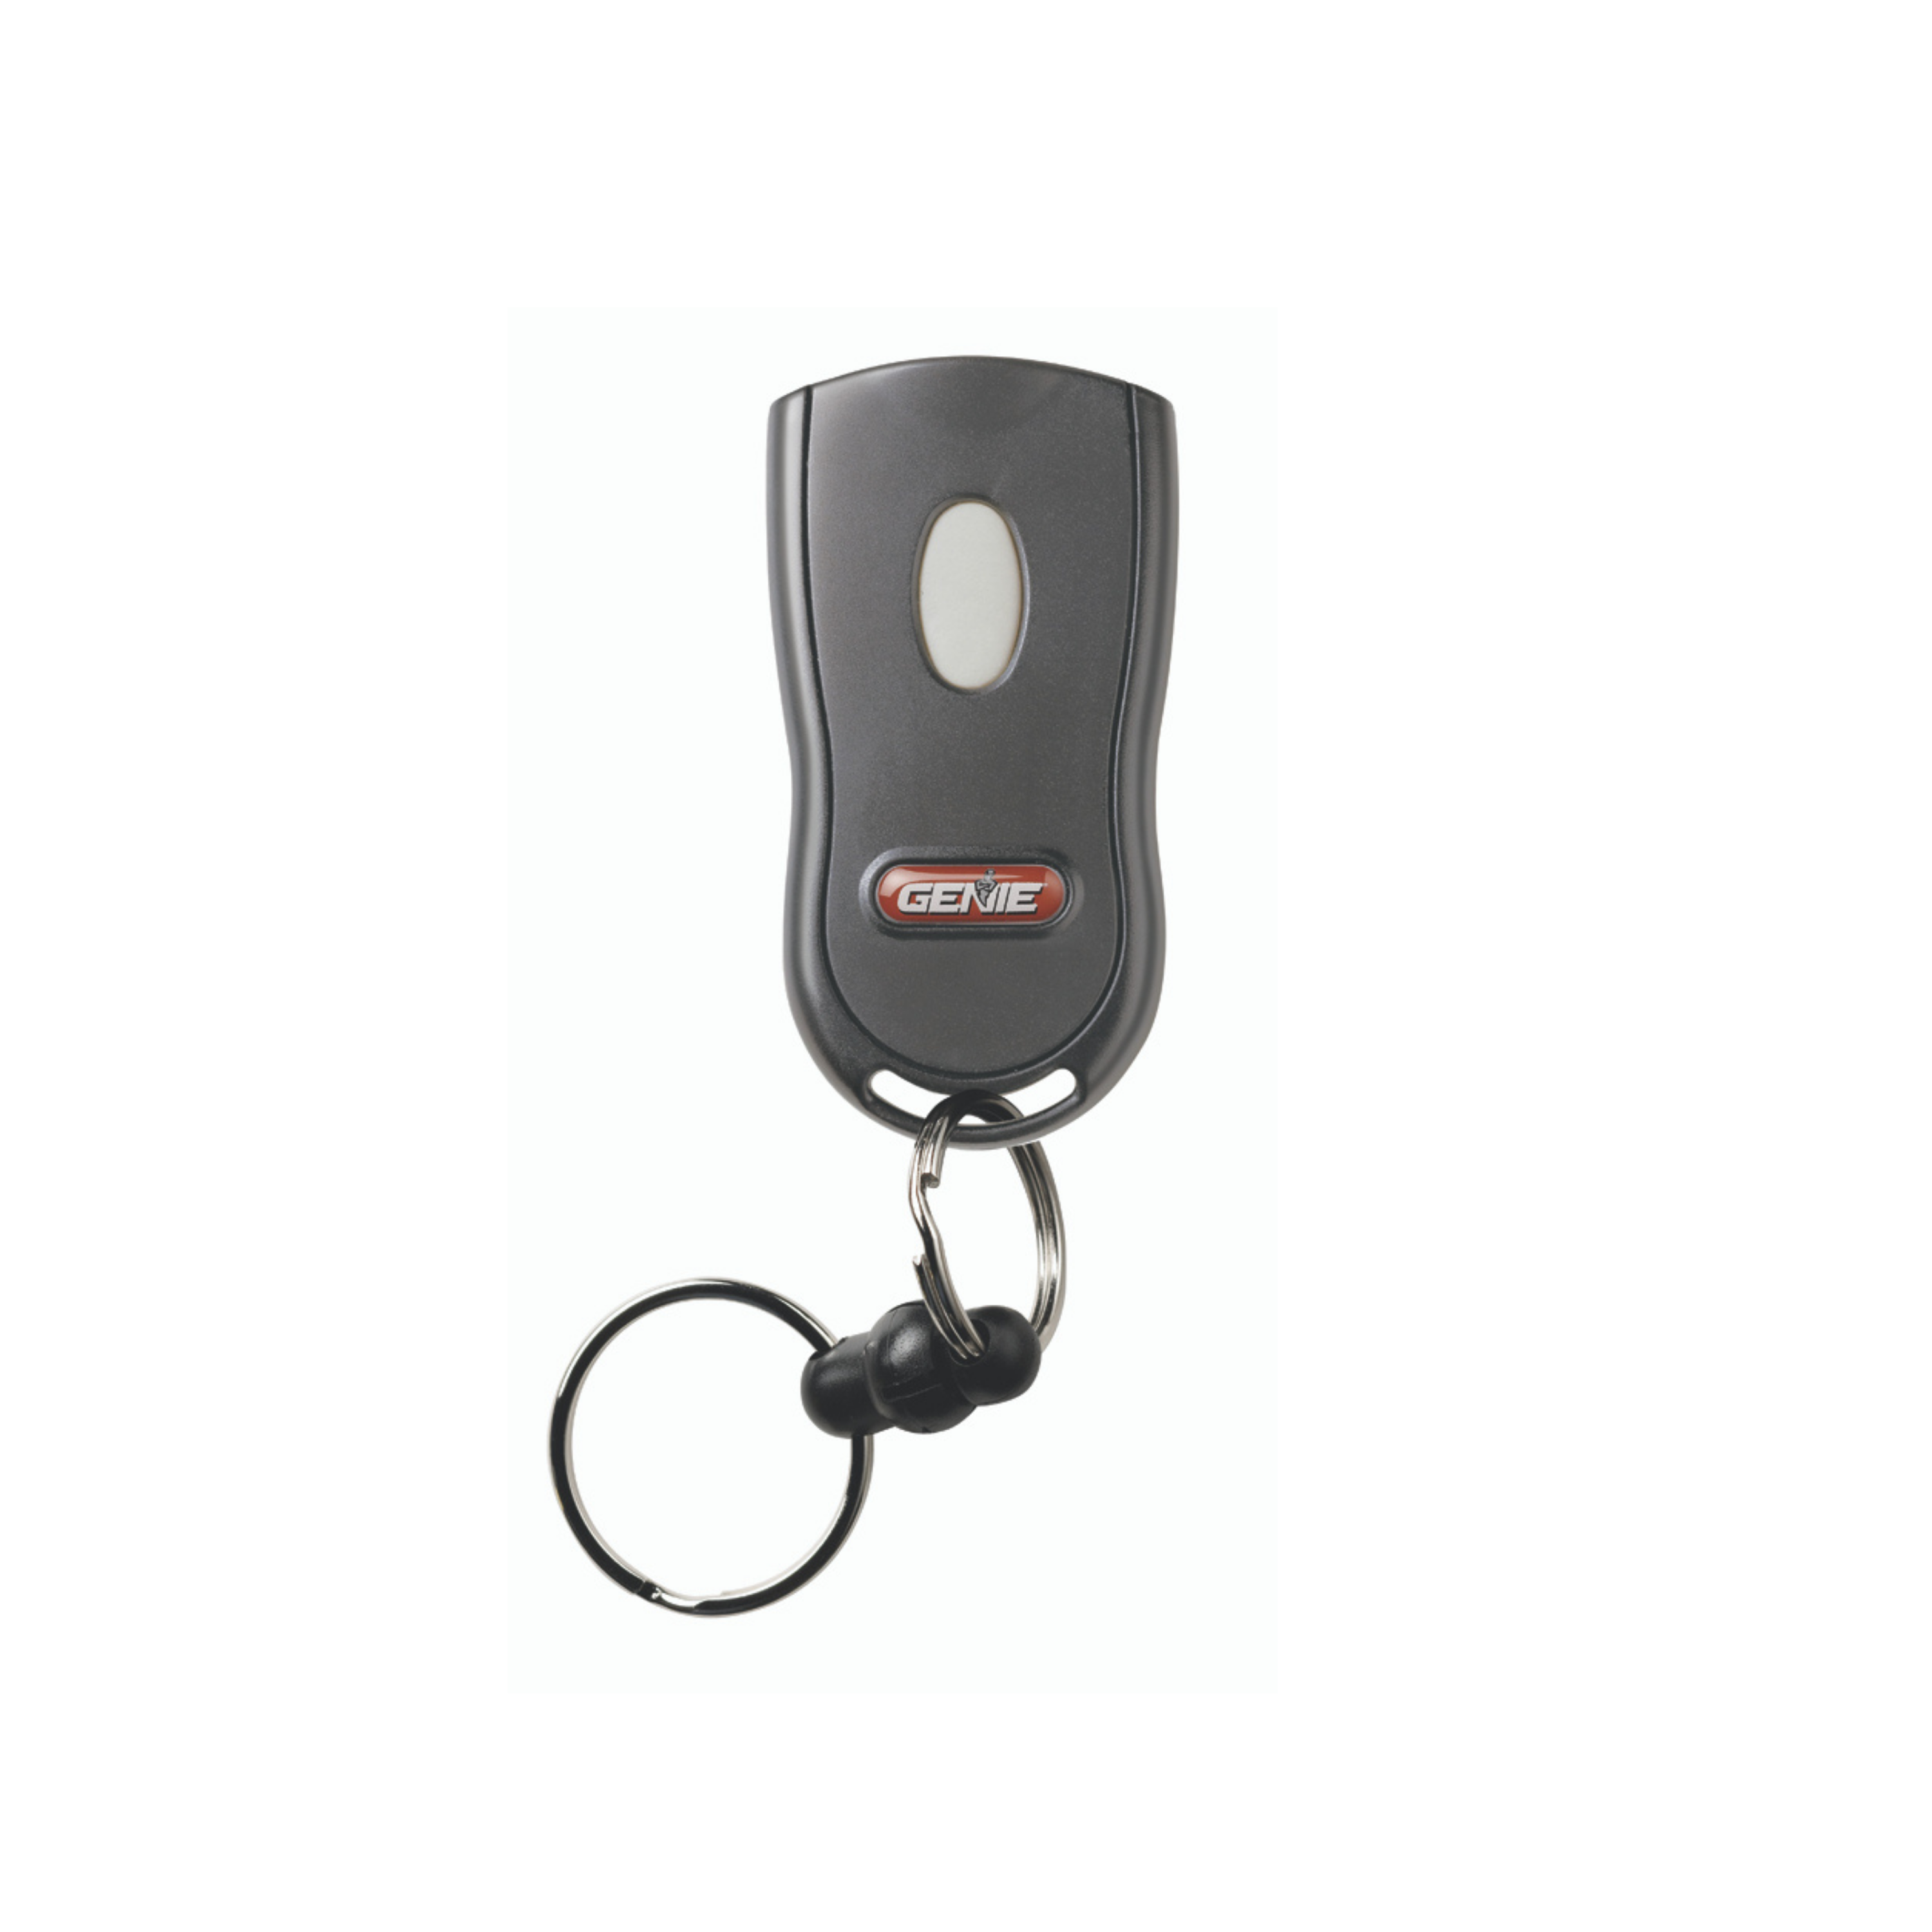 Genie Garage Door Opener Accessory: 1 Button remote